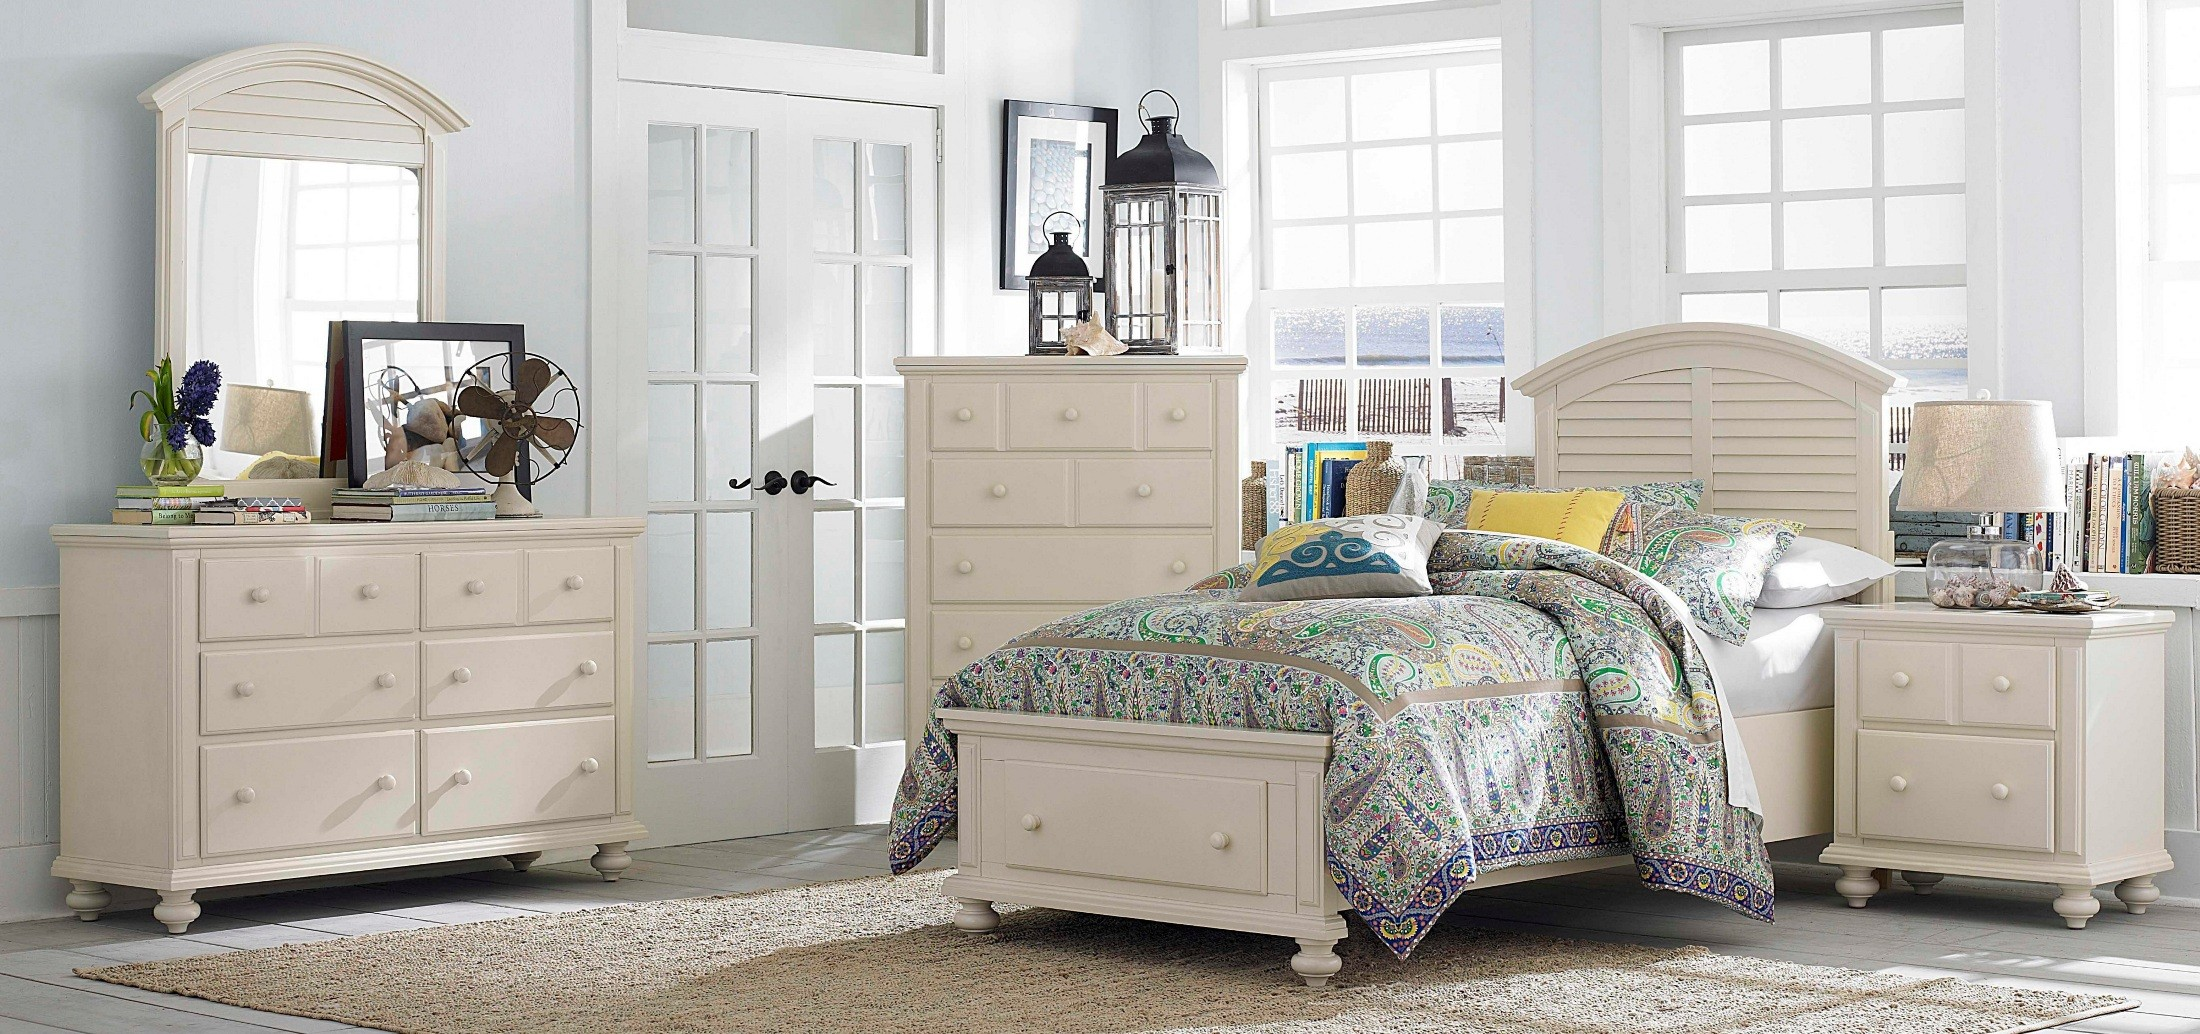 Seabrooke Youth Storage Panel Bedroom Set From Broyhill 4471 246 247 451 Coleman Furniture